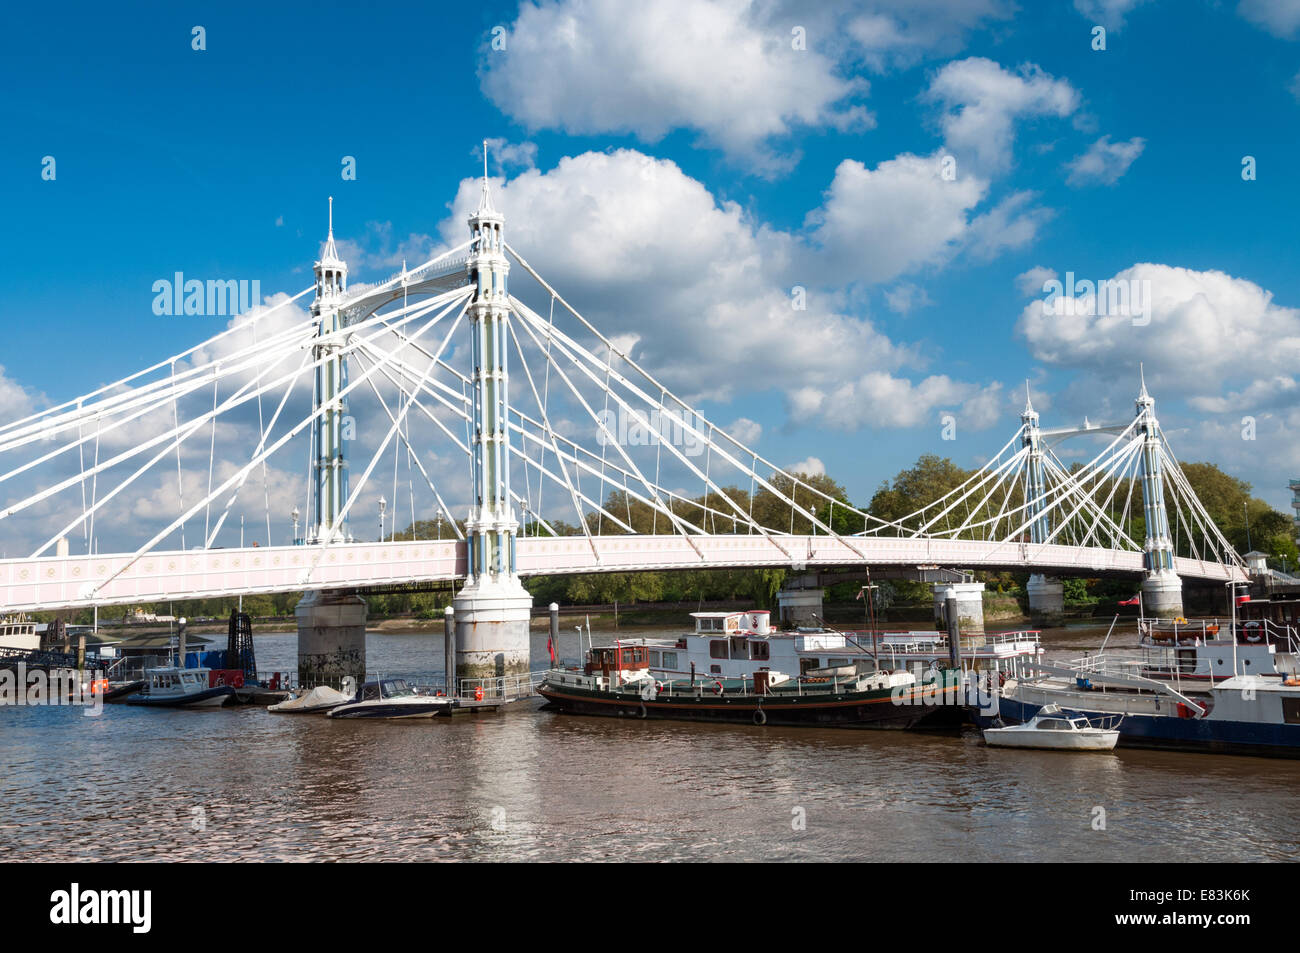 Albert Bridge, London, England, UK - Stock Image